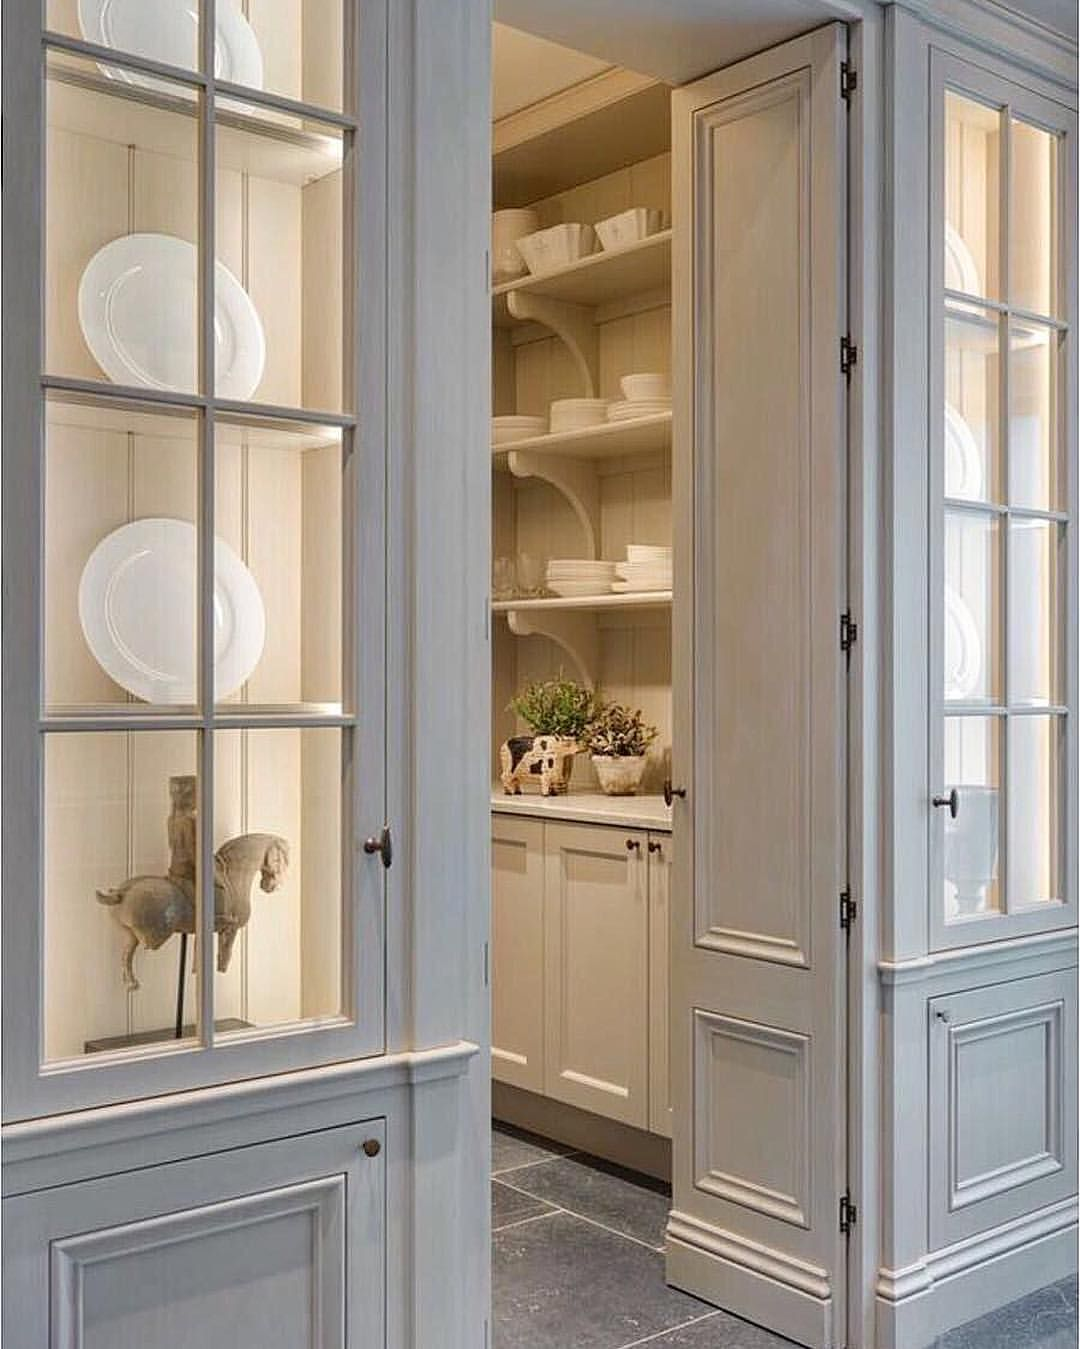 Built In Kitchen Pantry Ideas: 21 Dining Room Built-In Cabinets And Storage Design